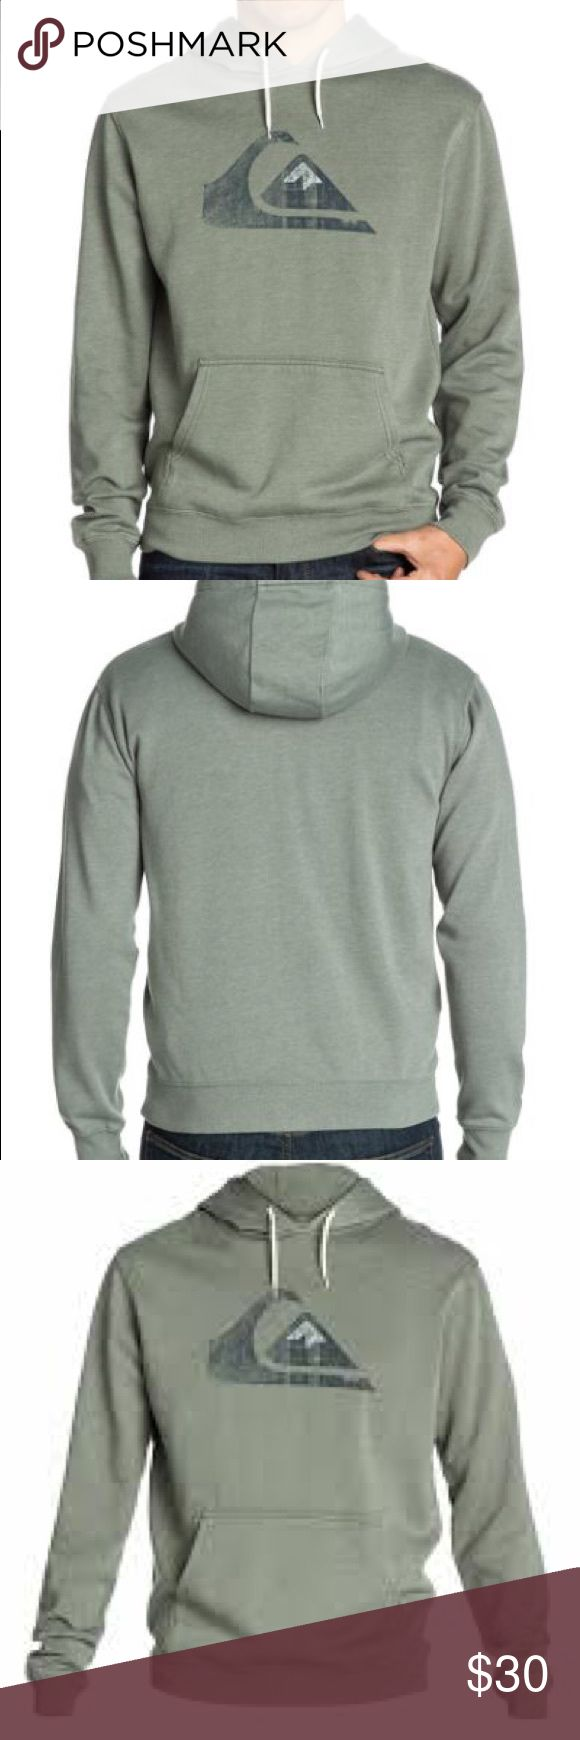 🆕Quicksilver Mens Prescott Pullover Hoodie The Quiksilver Men's Prescott Pullover Hoodie is a great way to welcome in the cooler months of the year. Made with a cotton poly blend fabric, you'll be able to comfortably stay warm no matter where your day takes you.  High Quality Materials 60% Cotton, 40% Polyester. Hood Rib Fleece. Brushed Cotton Polyester. Regular Fit. White Contrast. Rib at Cuffs and Hem. Quiksilver Sweaters